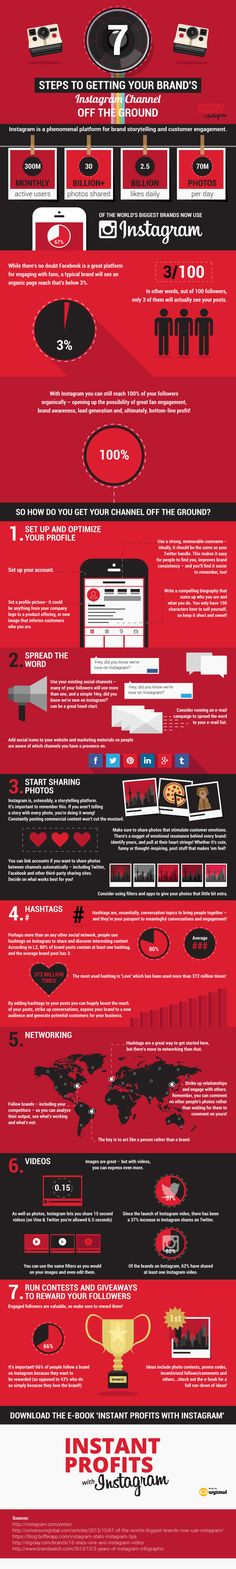 Seven Steps To Getting Your Brand's #Instagram Channel Off The Ground - #infographic #socialmedia